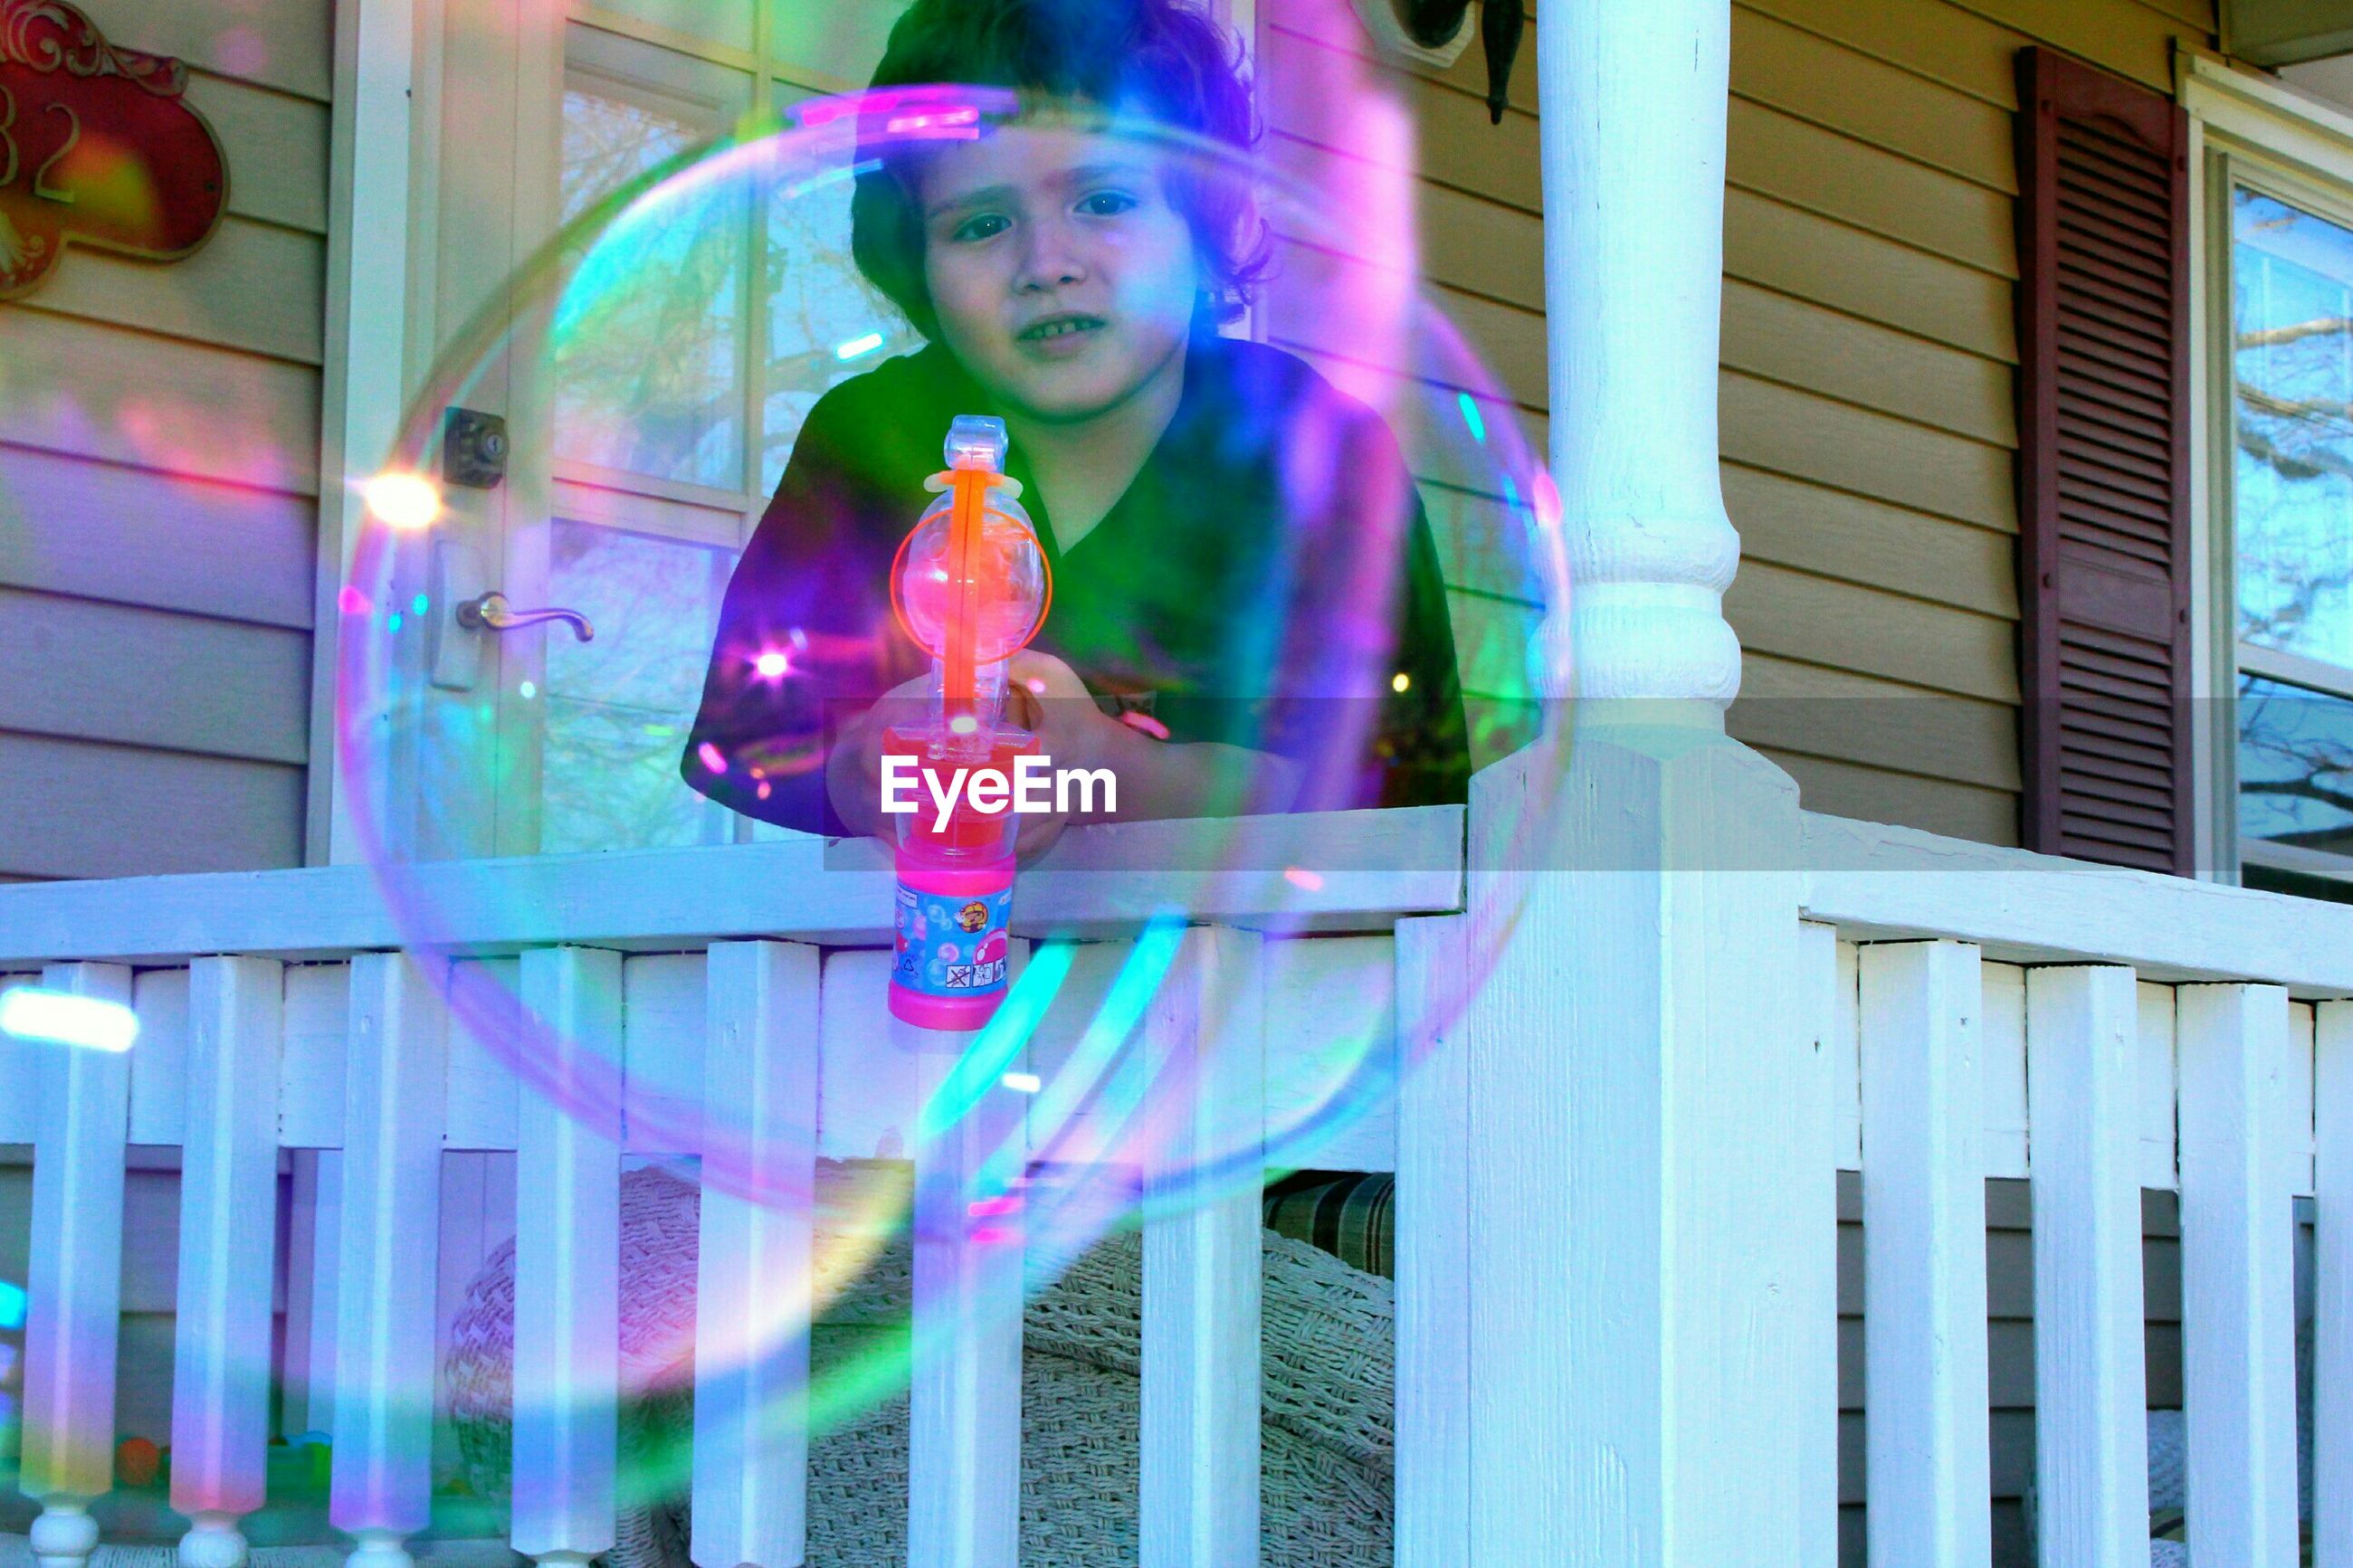 Portrait of boy holding bubble gun seen through bubbles